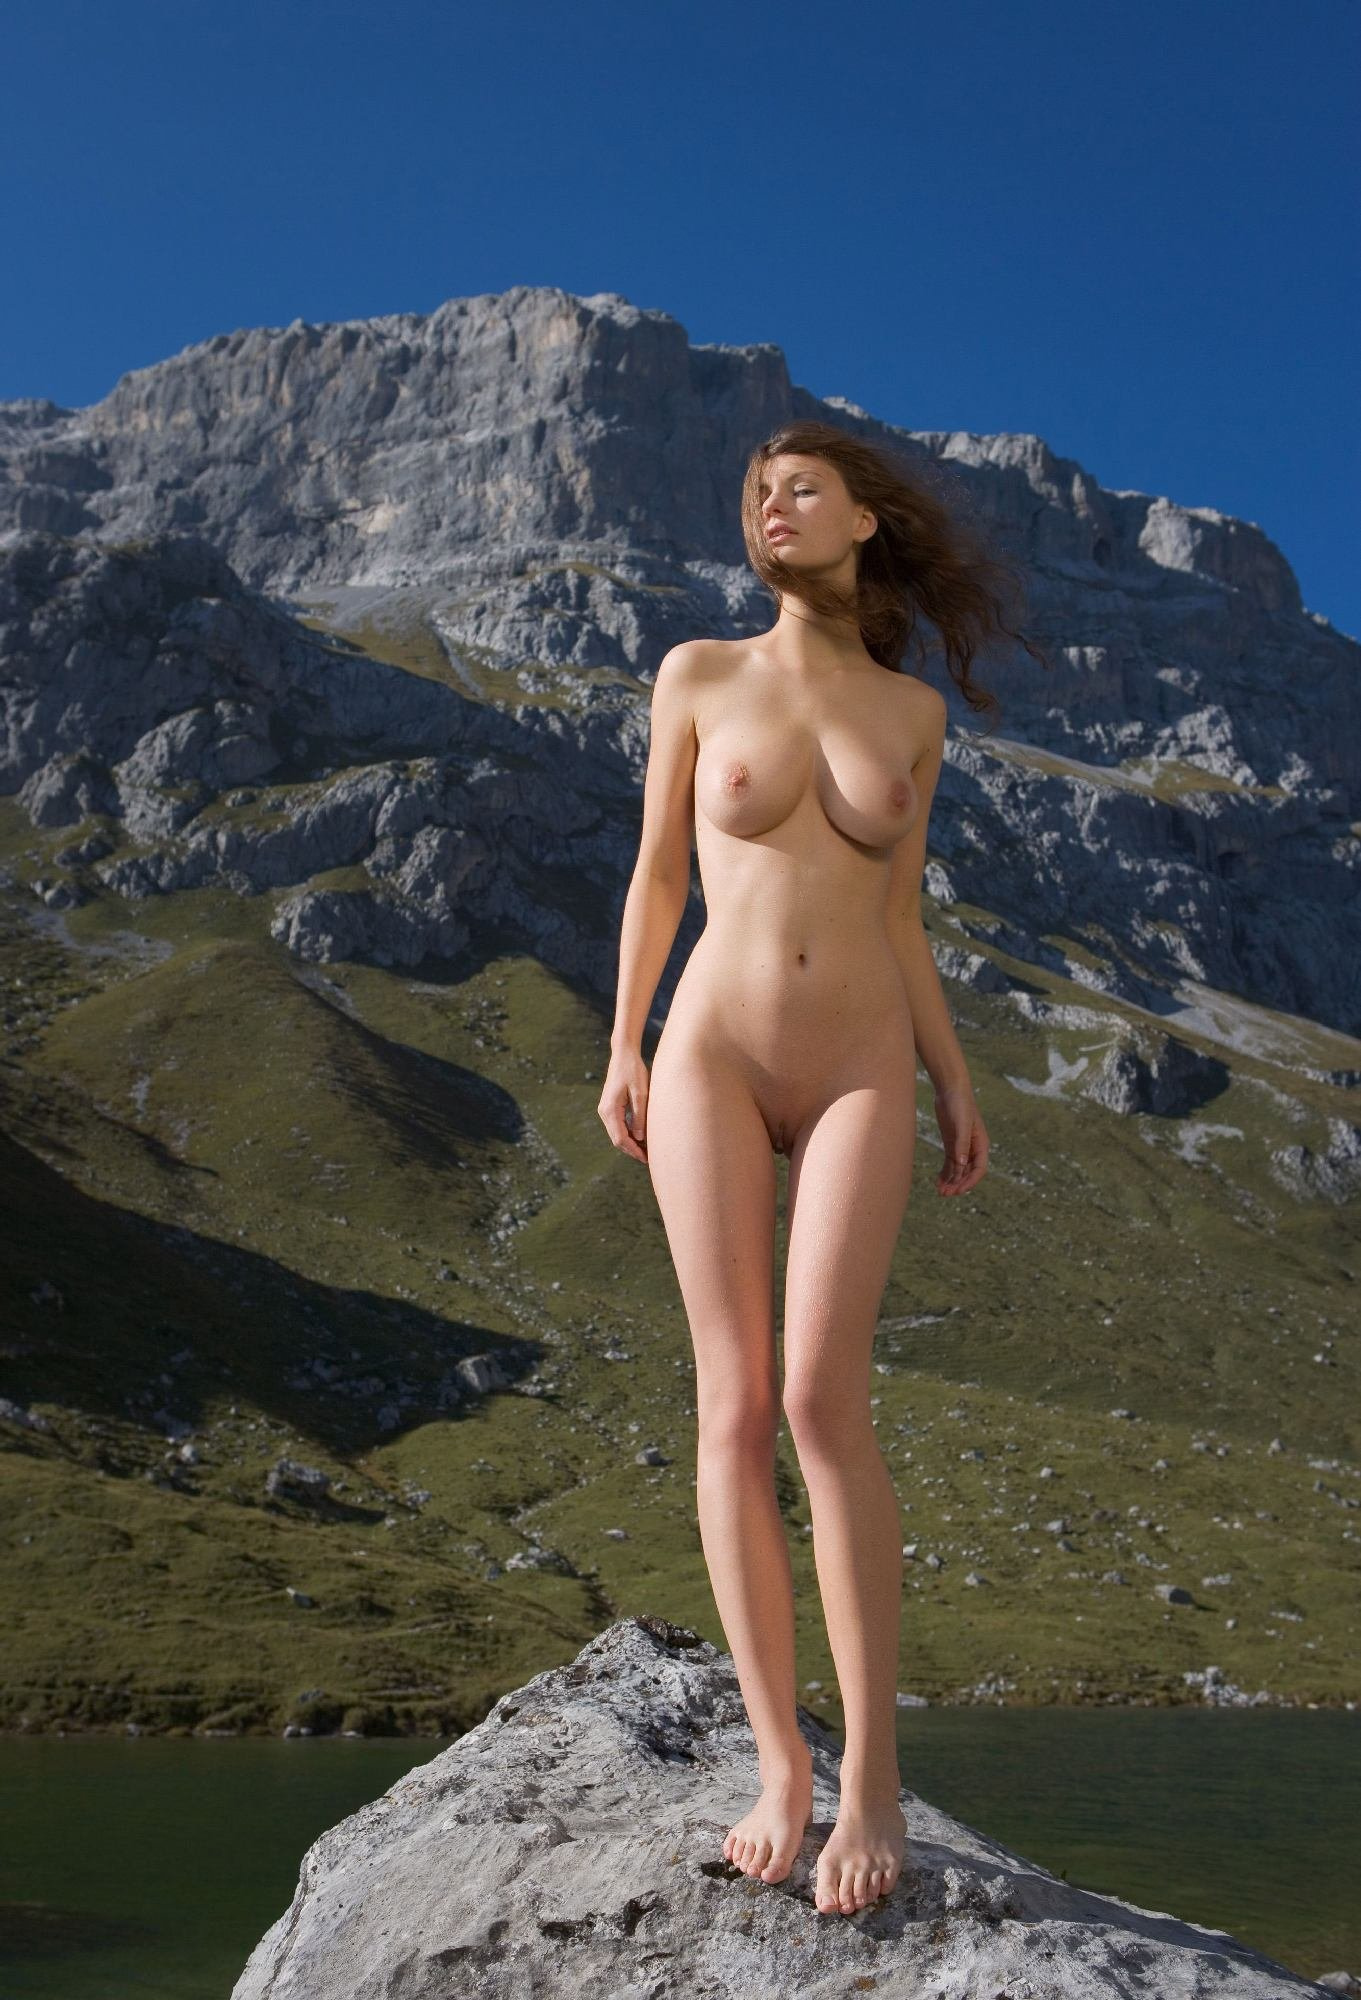 The Golden Nude Girl Sunbathing In Slovenian Mountains Free Full Hd Photo